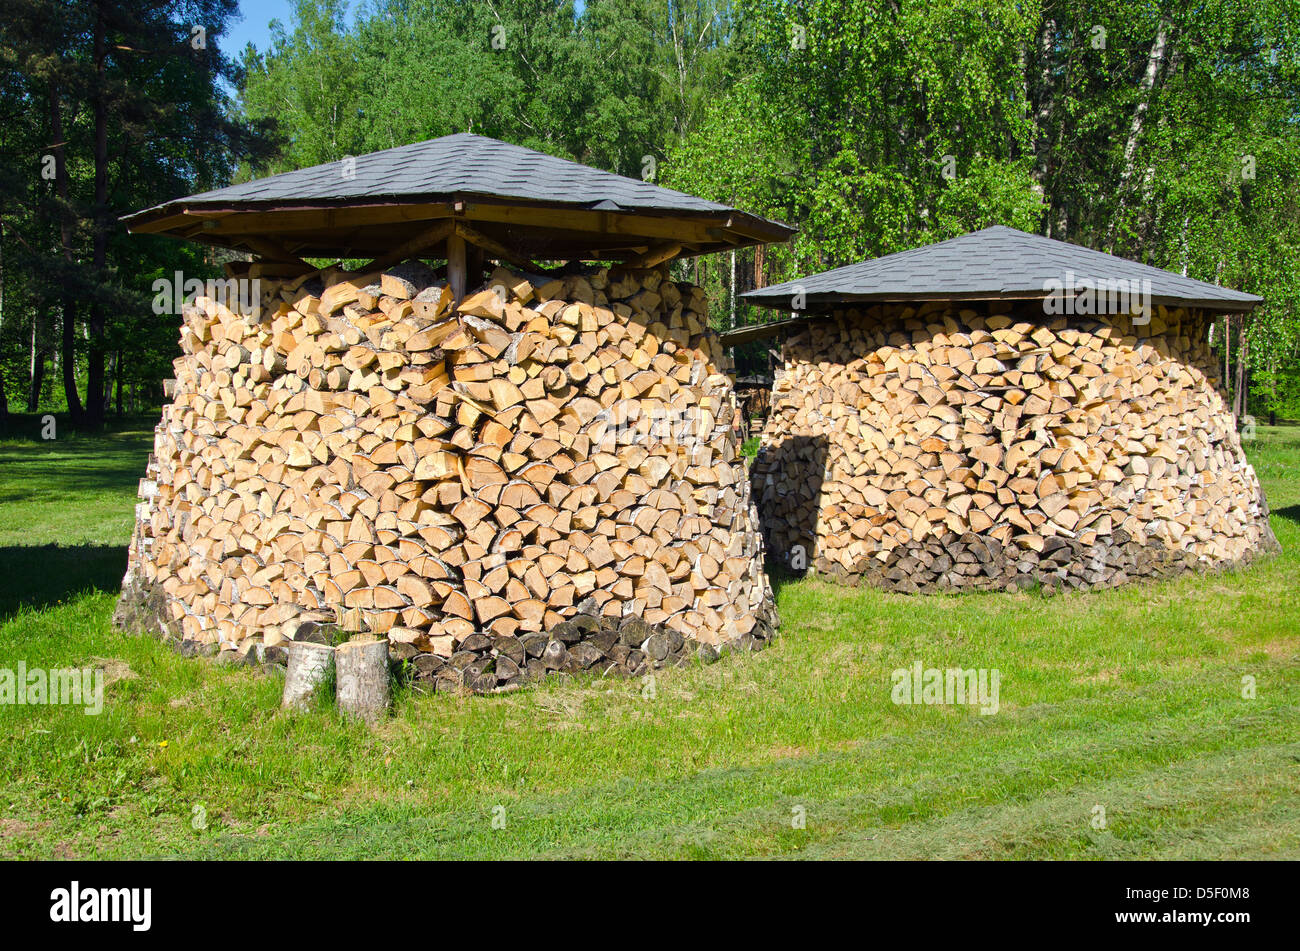 two shopped firewood stacks in summer park - Stock Image